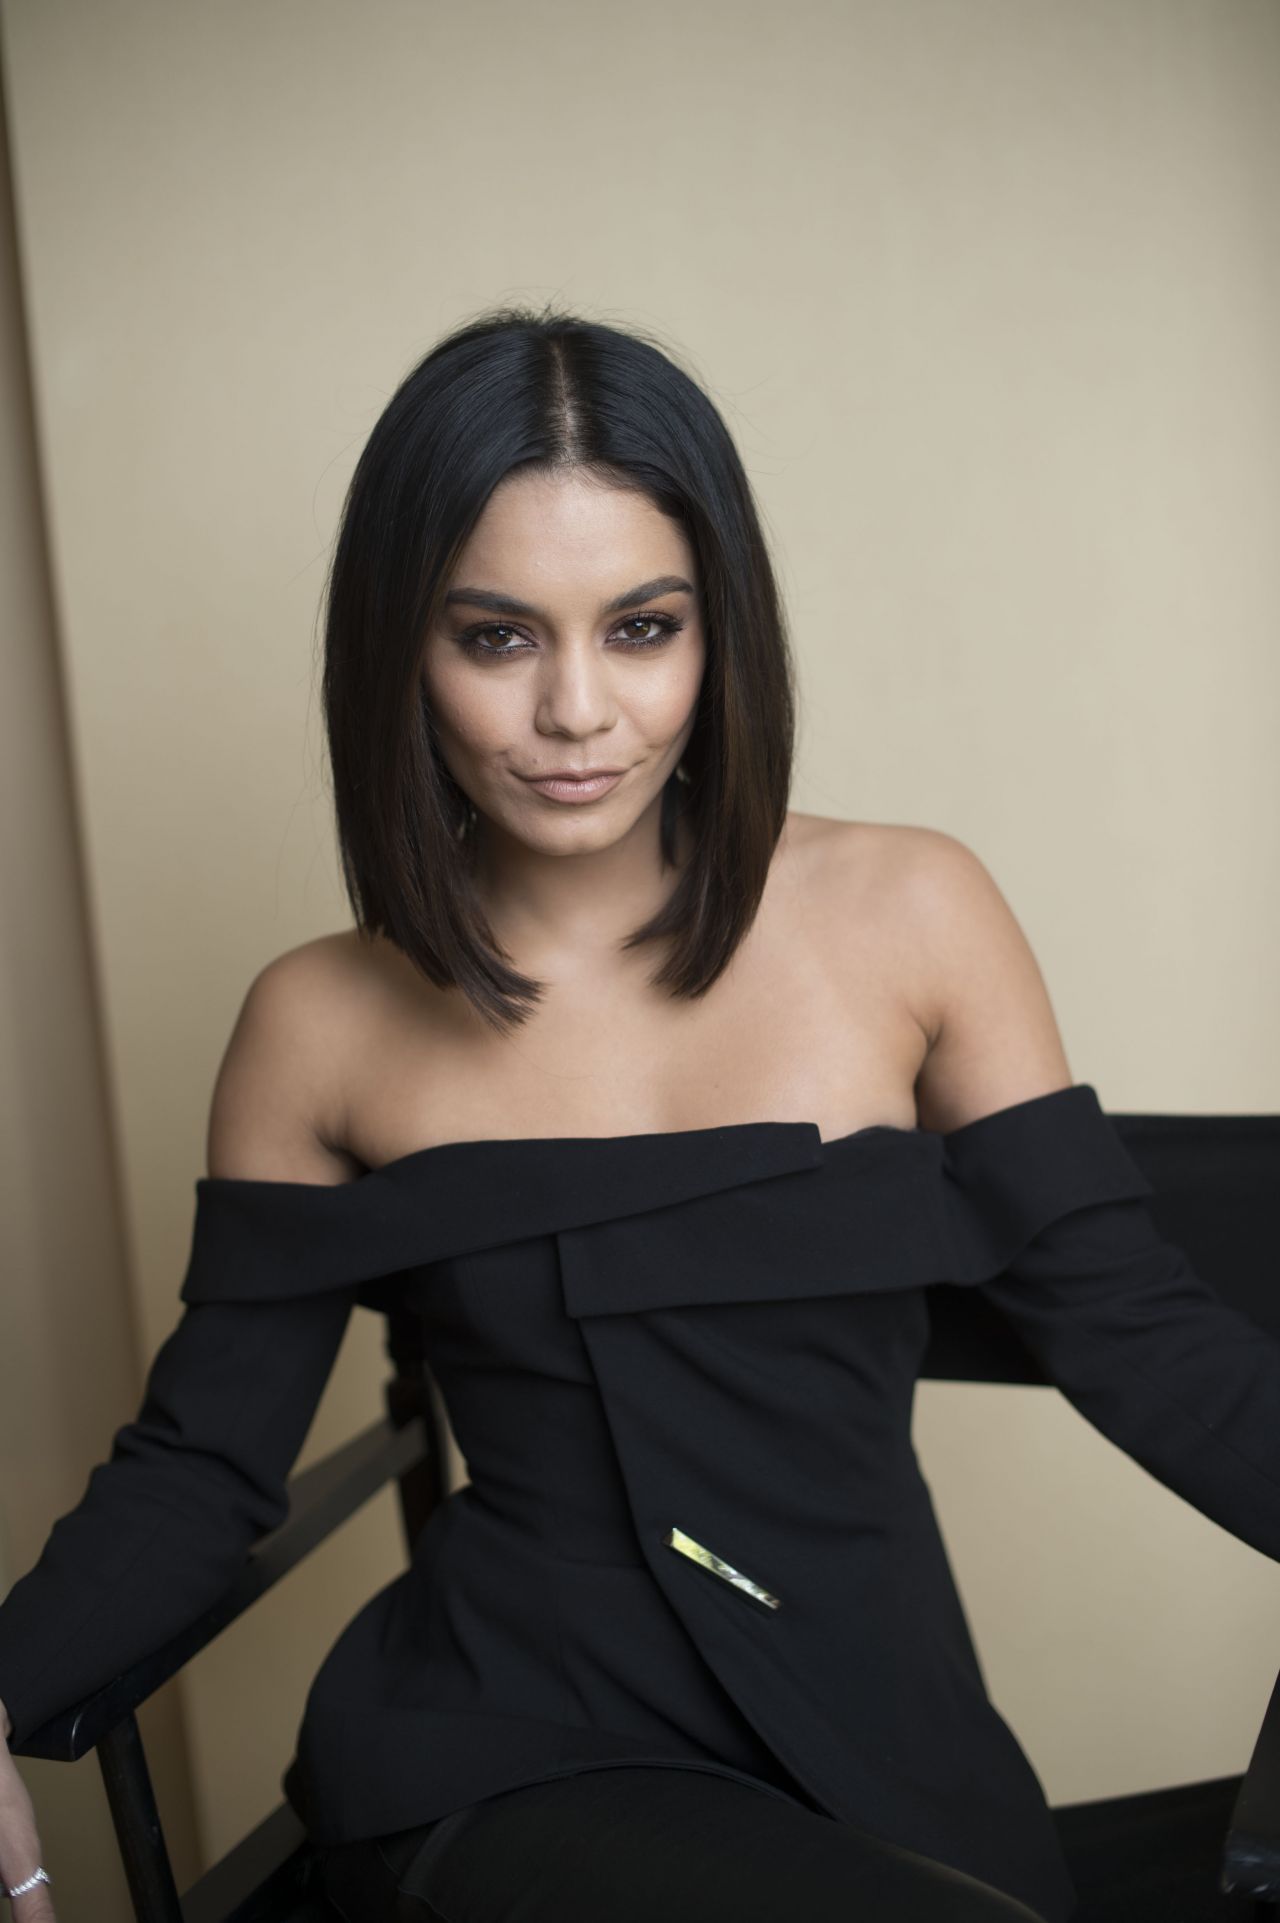 Vanessa Hudgens Variety Podcast At Tca Winter Press Tour